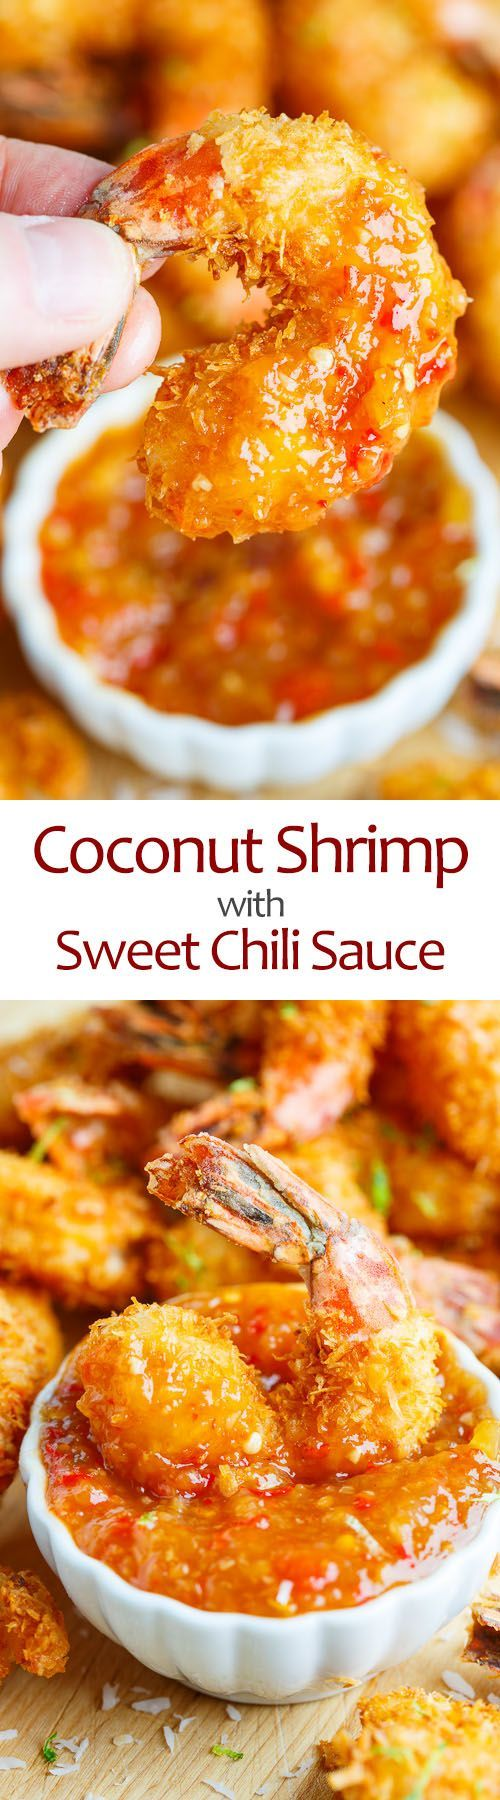 Coconut Shrimp with Sweet Chili Sauce - Don't you just want to taste this! From Kevin- Closet Cooking